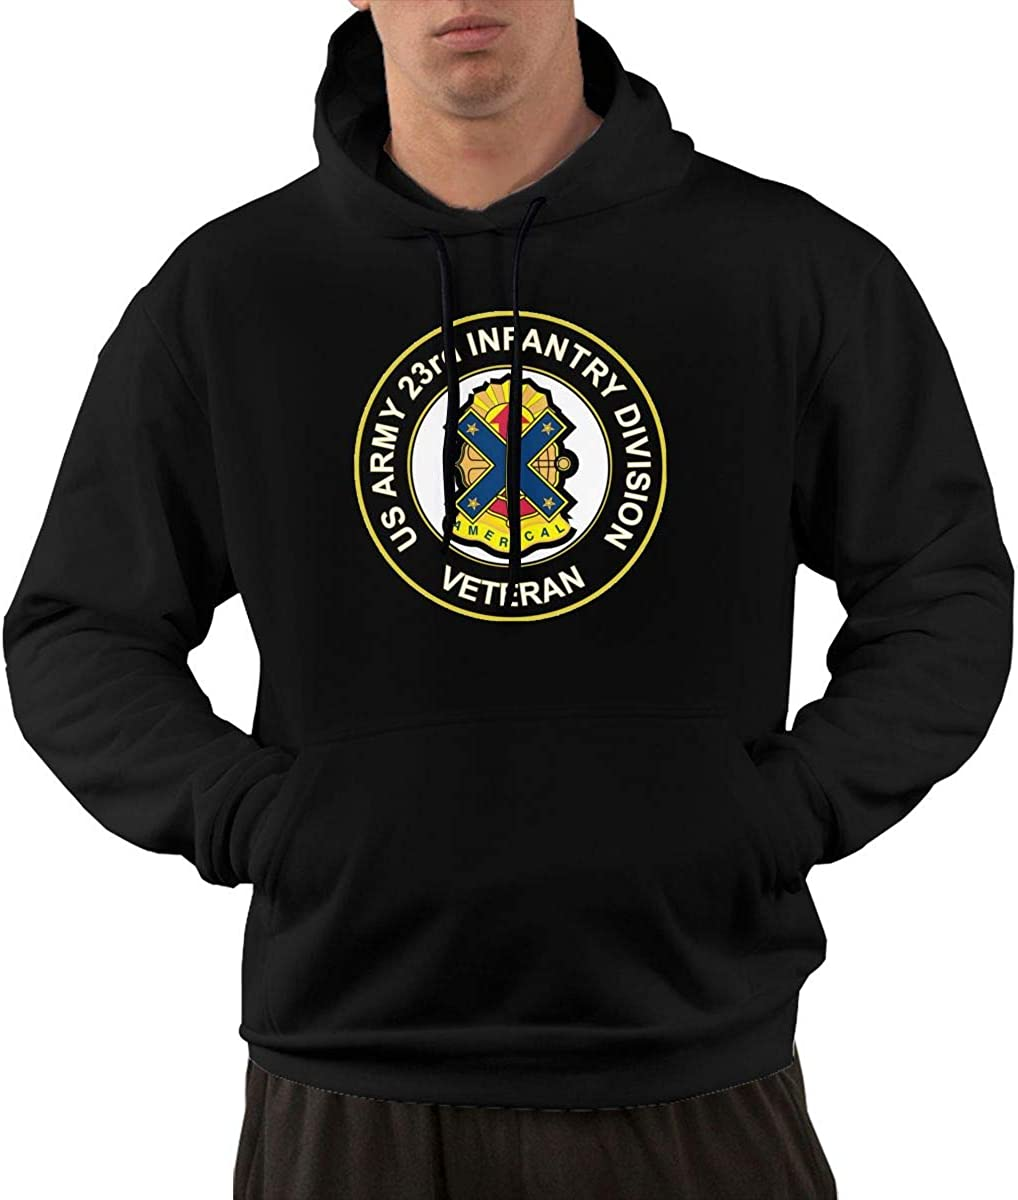 U.S Army Veteran 23rd Infantry Division Unit Crest Mens Front Pocket Pullover Cotton Hoodie Sweatshirts